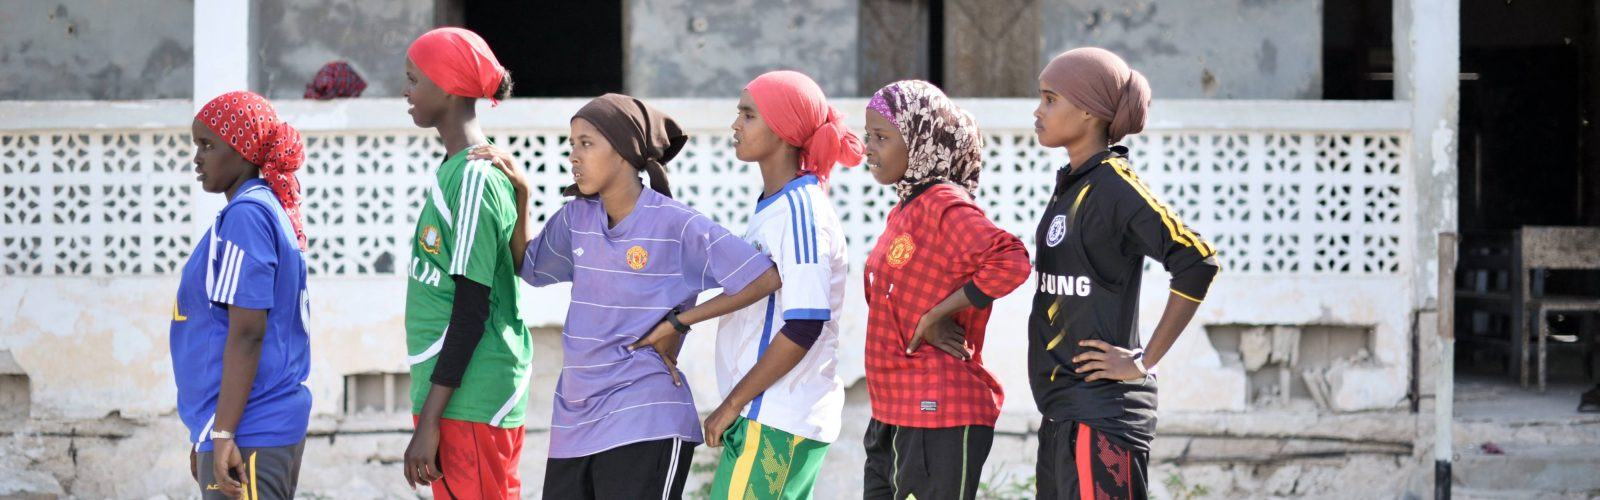 Diet and exercise are important factors in preventing disease. Ensuring women have adequate access to physical activity is vital.